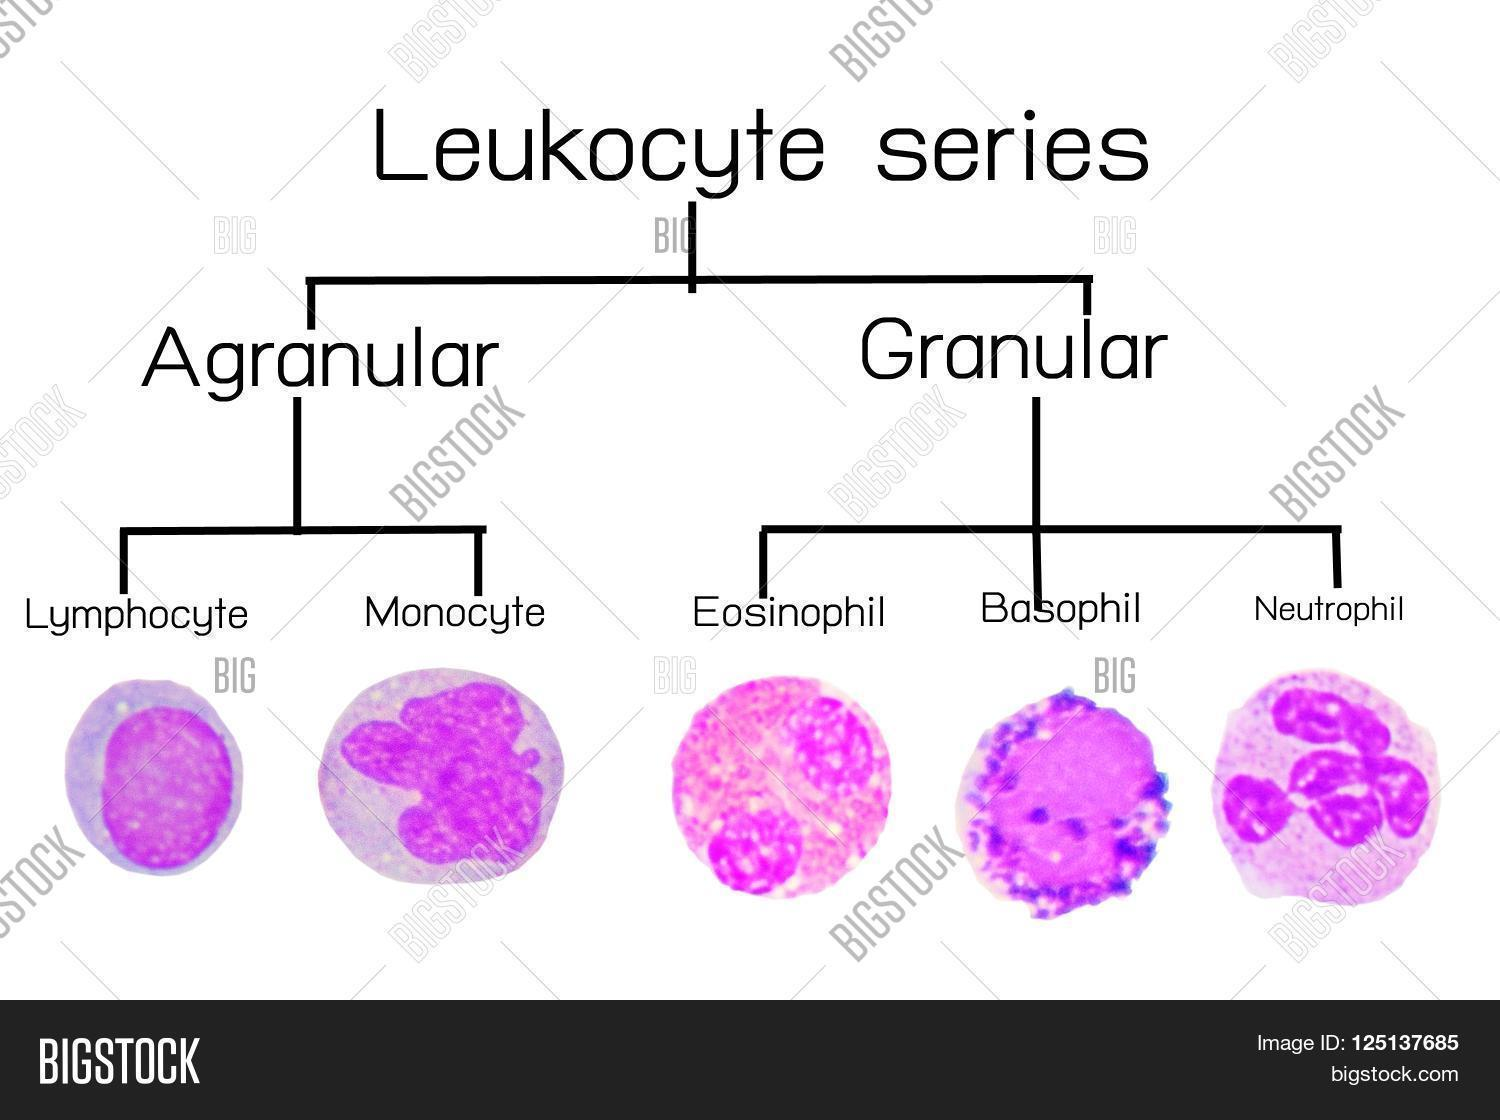 Neutrophil Vs Eosinophil | www.pixshark.com - Images ...